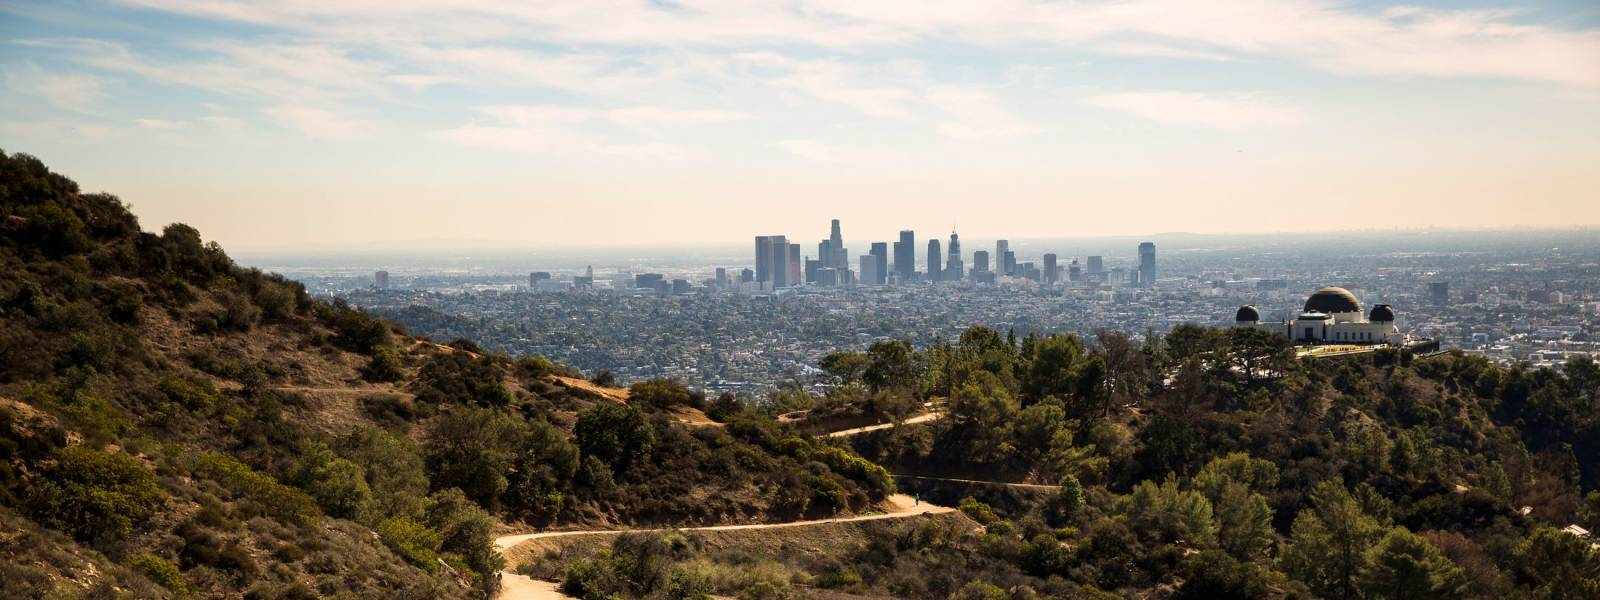 City Views from the Hollywood Hills